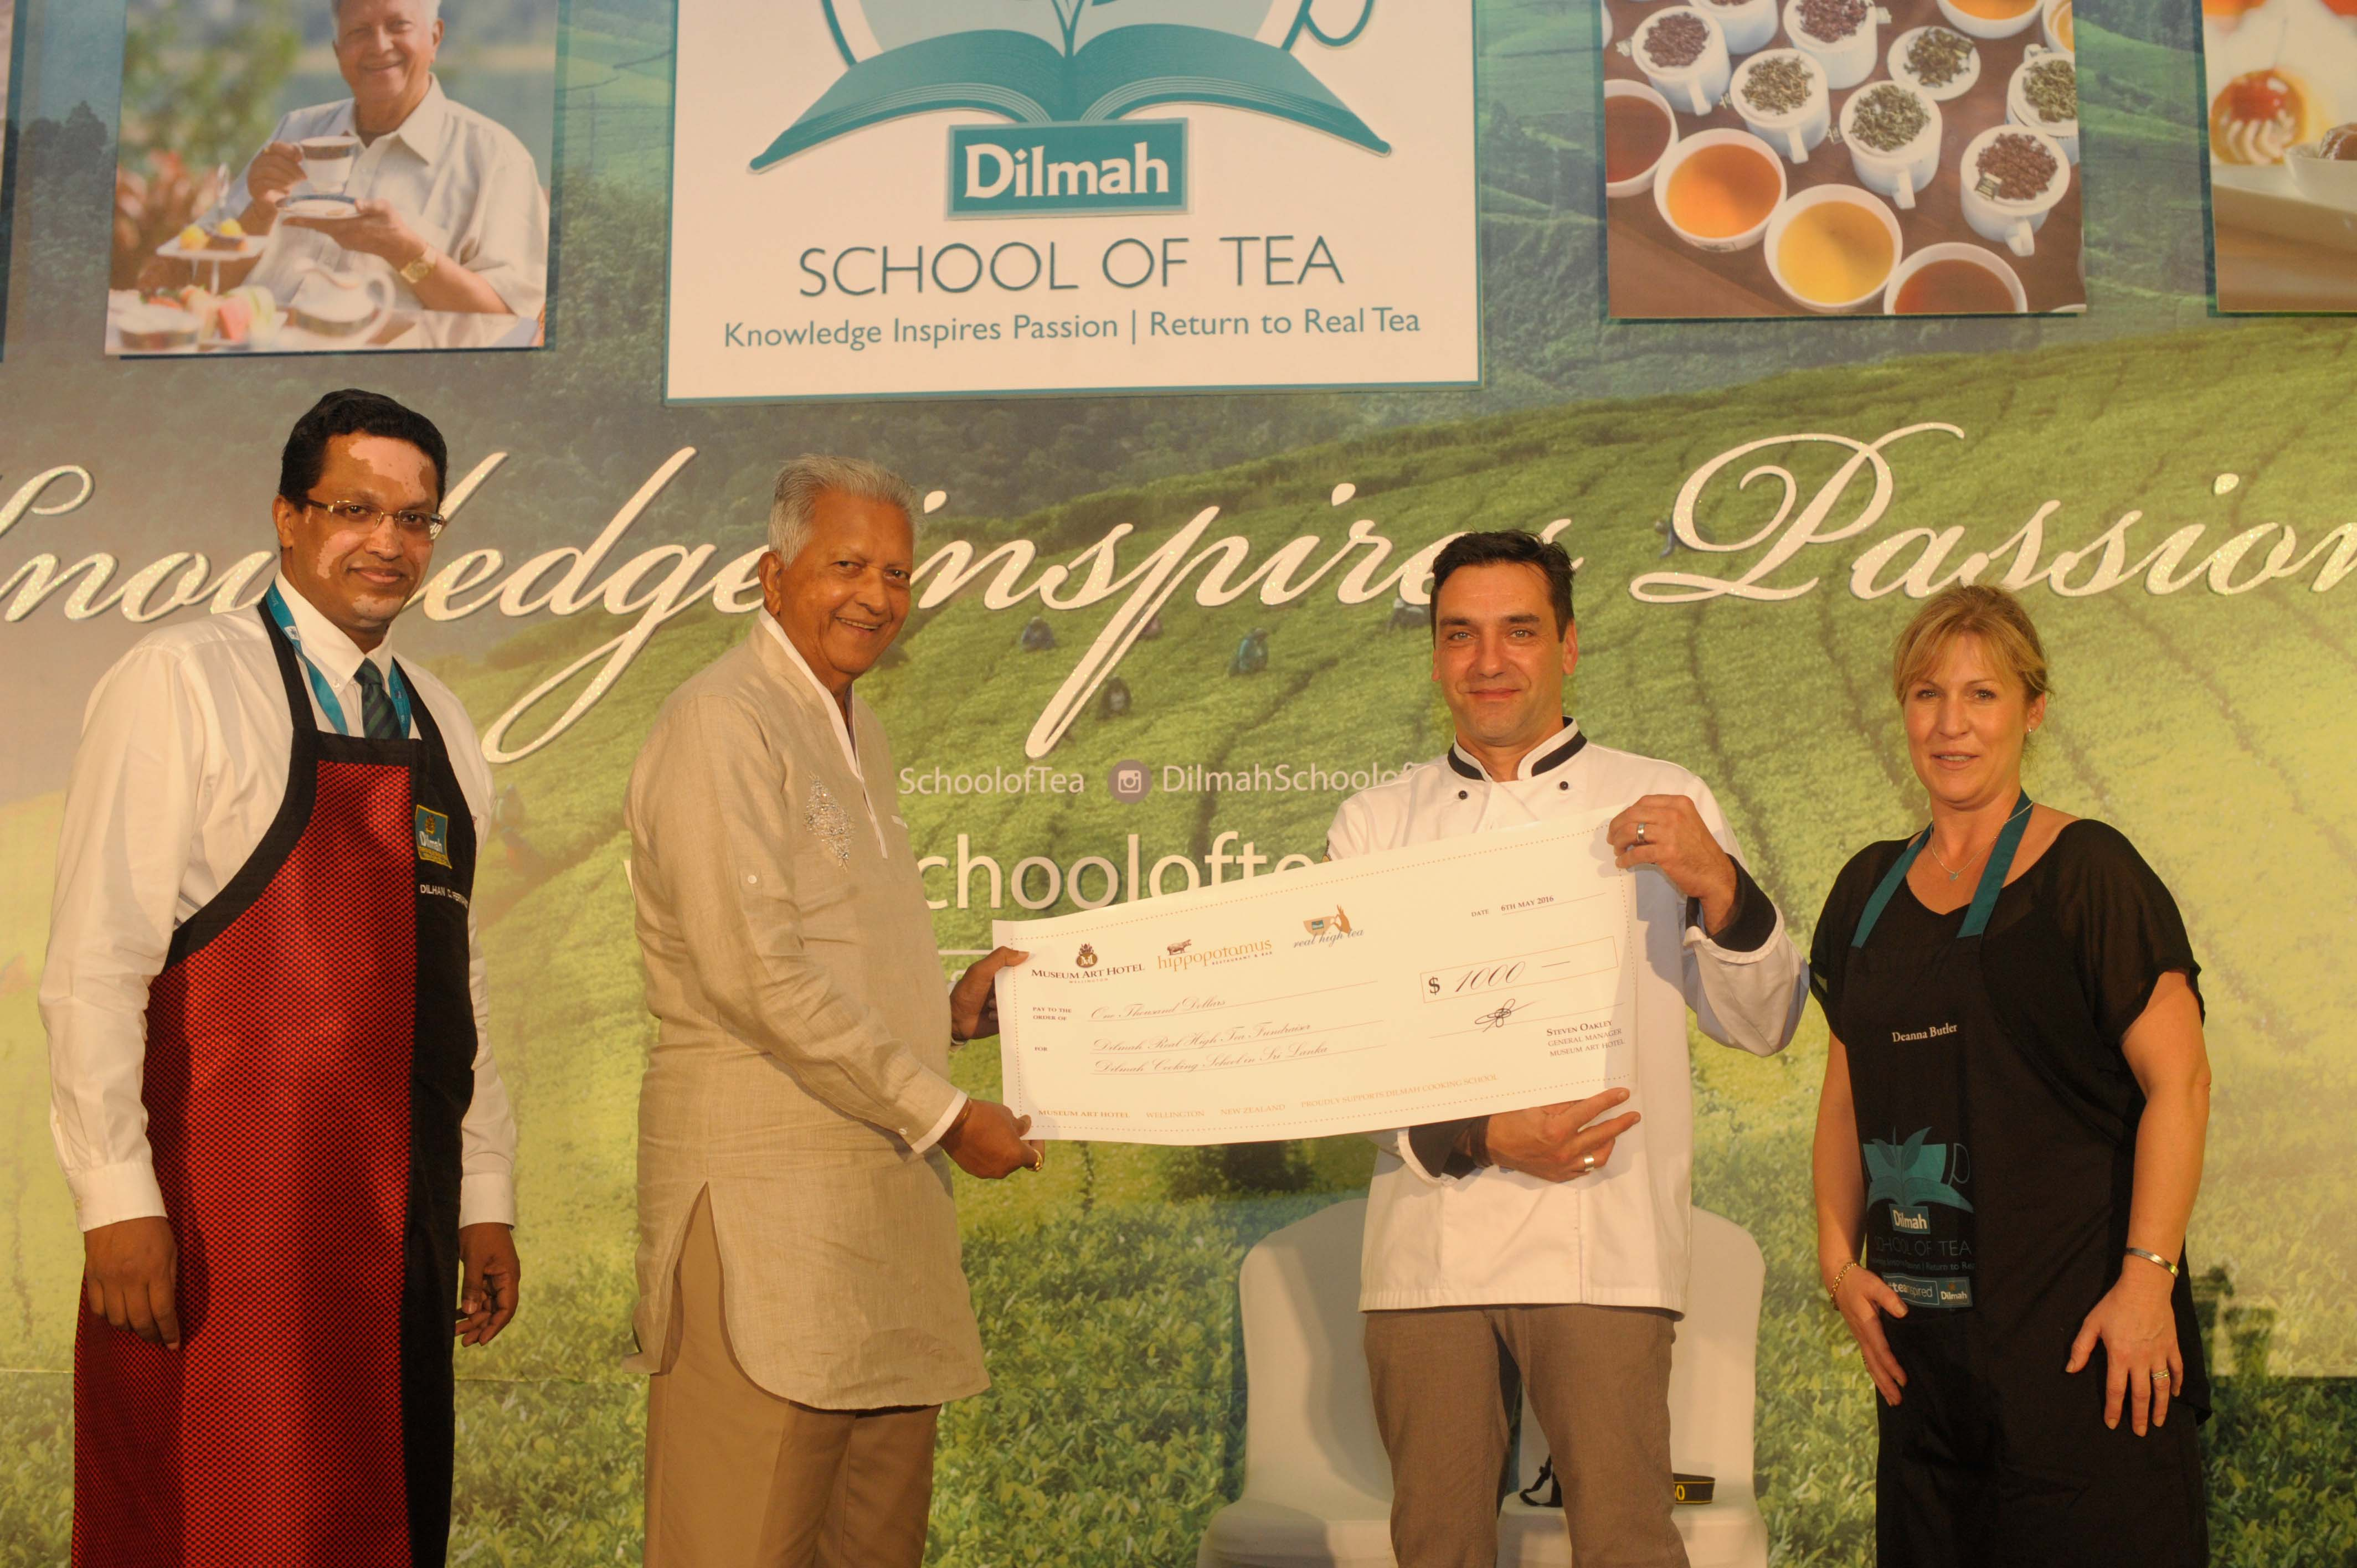 Founder of Dilmah rewarding Global RHT winner Laurent Loudeac